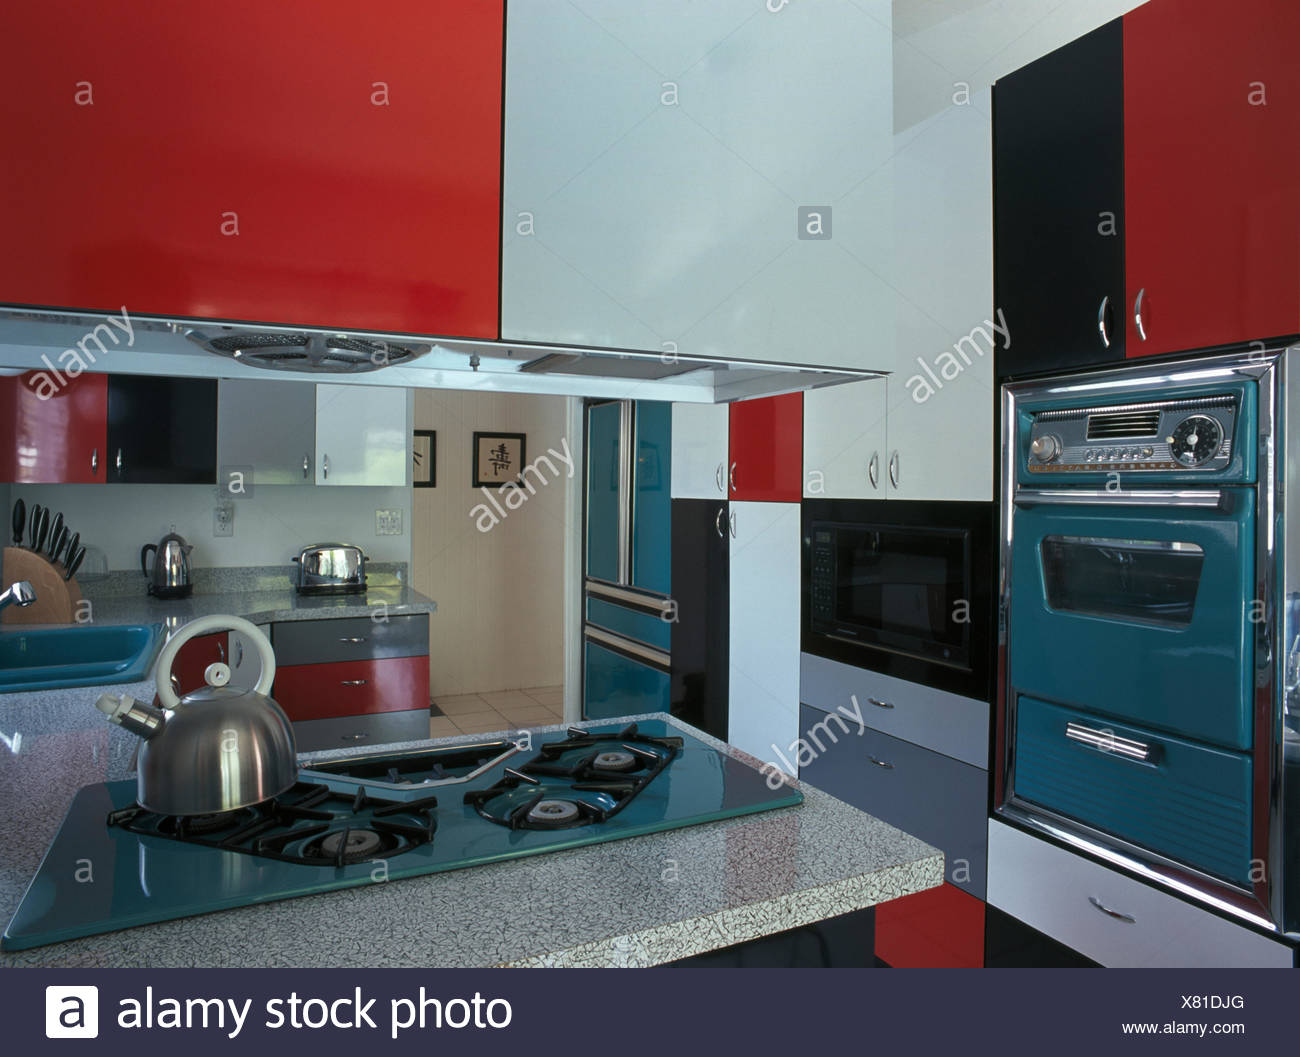 Set In Hob Stock Photos & Set In Hob Stock Images - Alamy